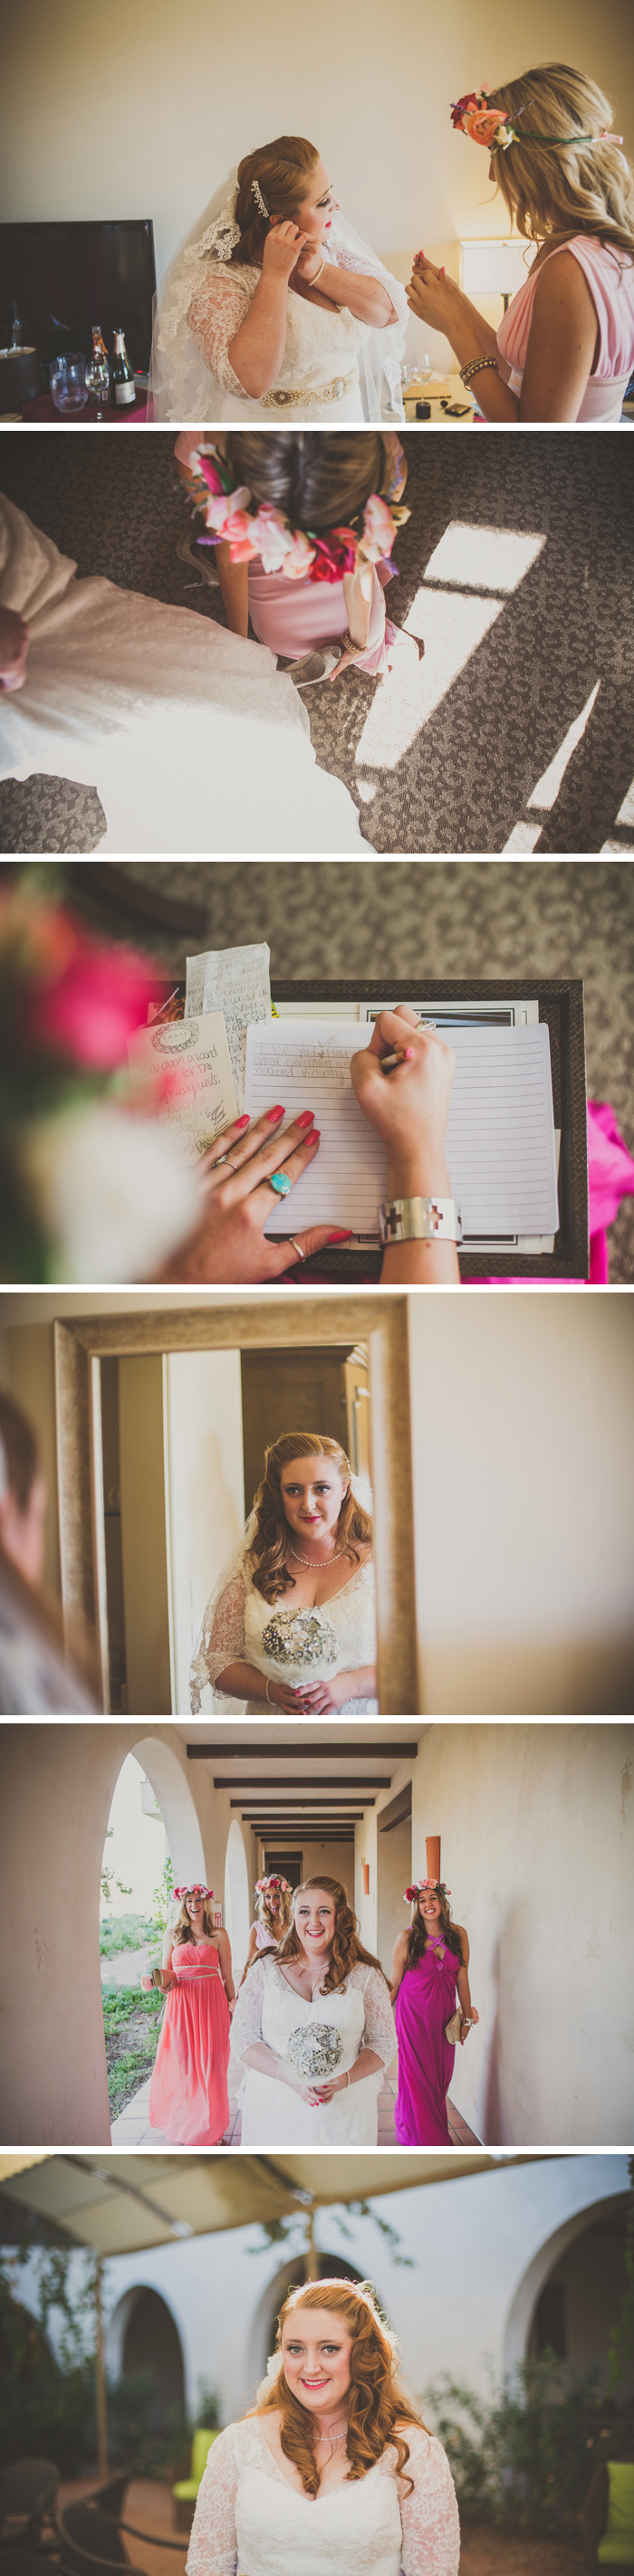 Wedding Photography At Ponte Inn